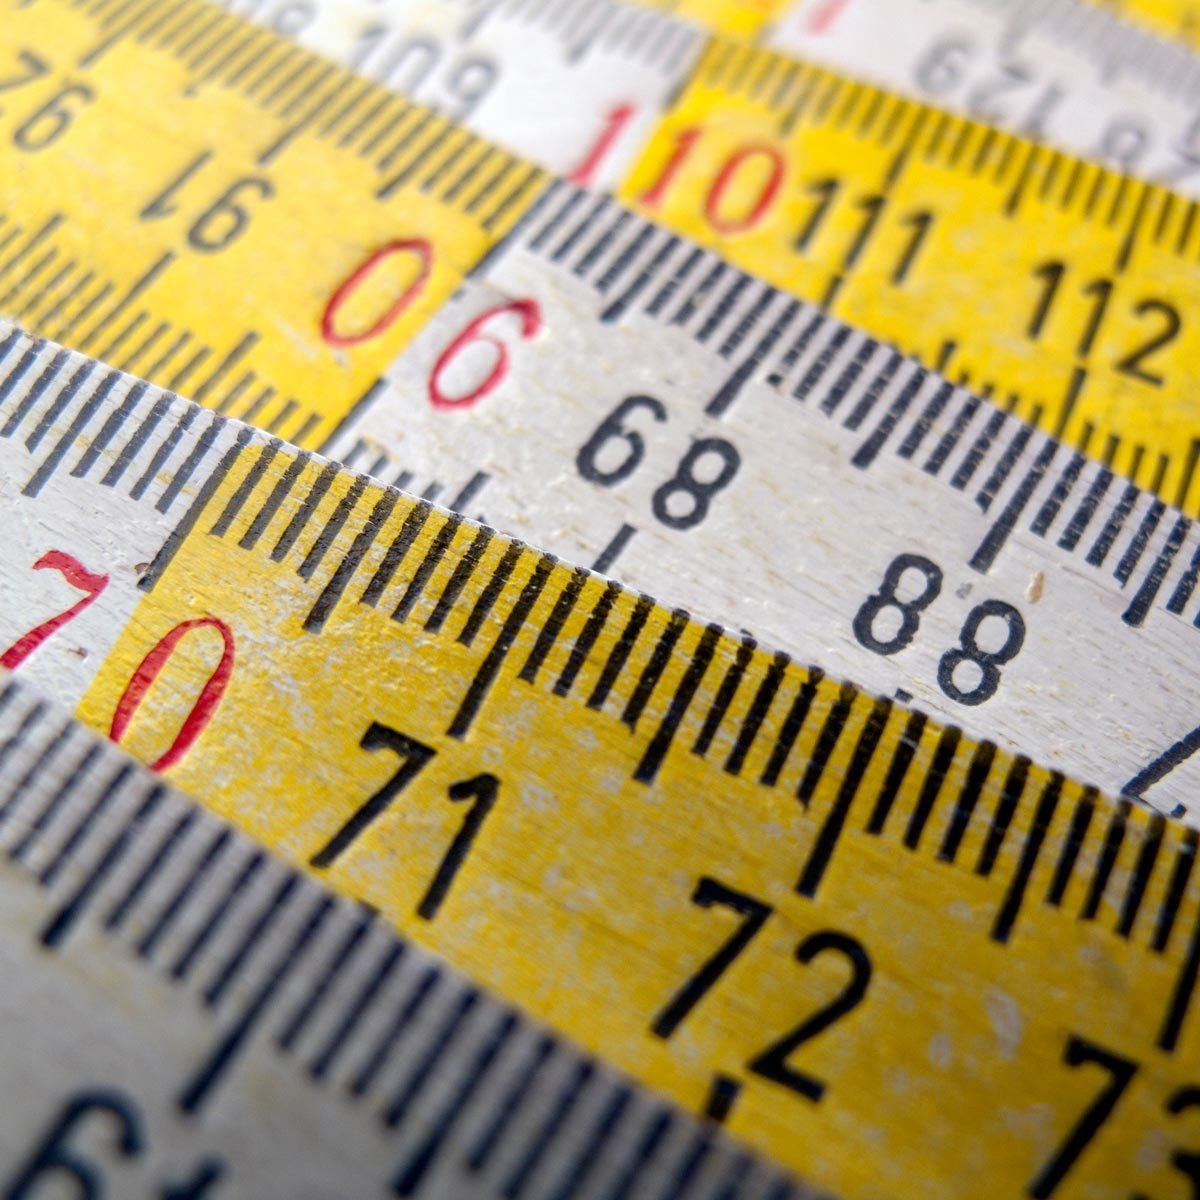 wooden white and yellow ruler metric system